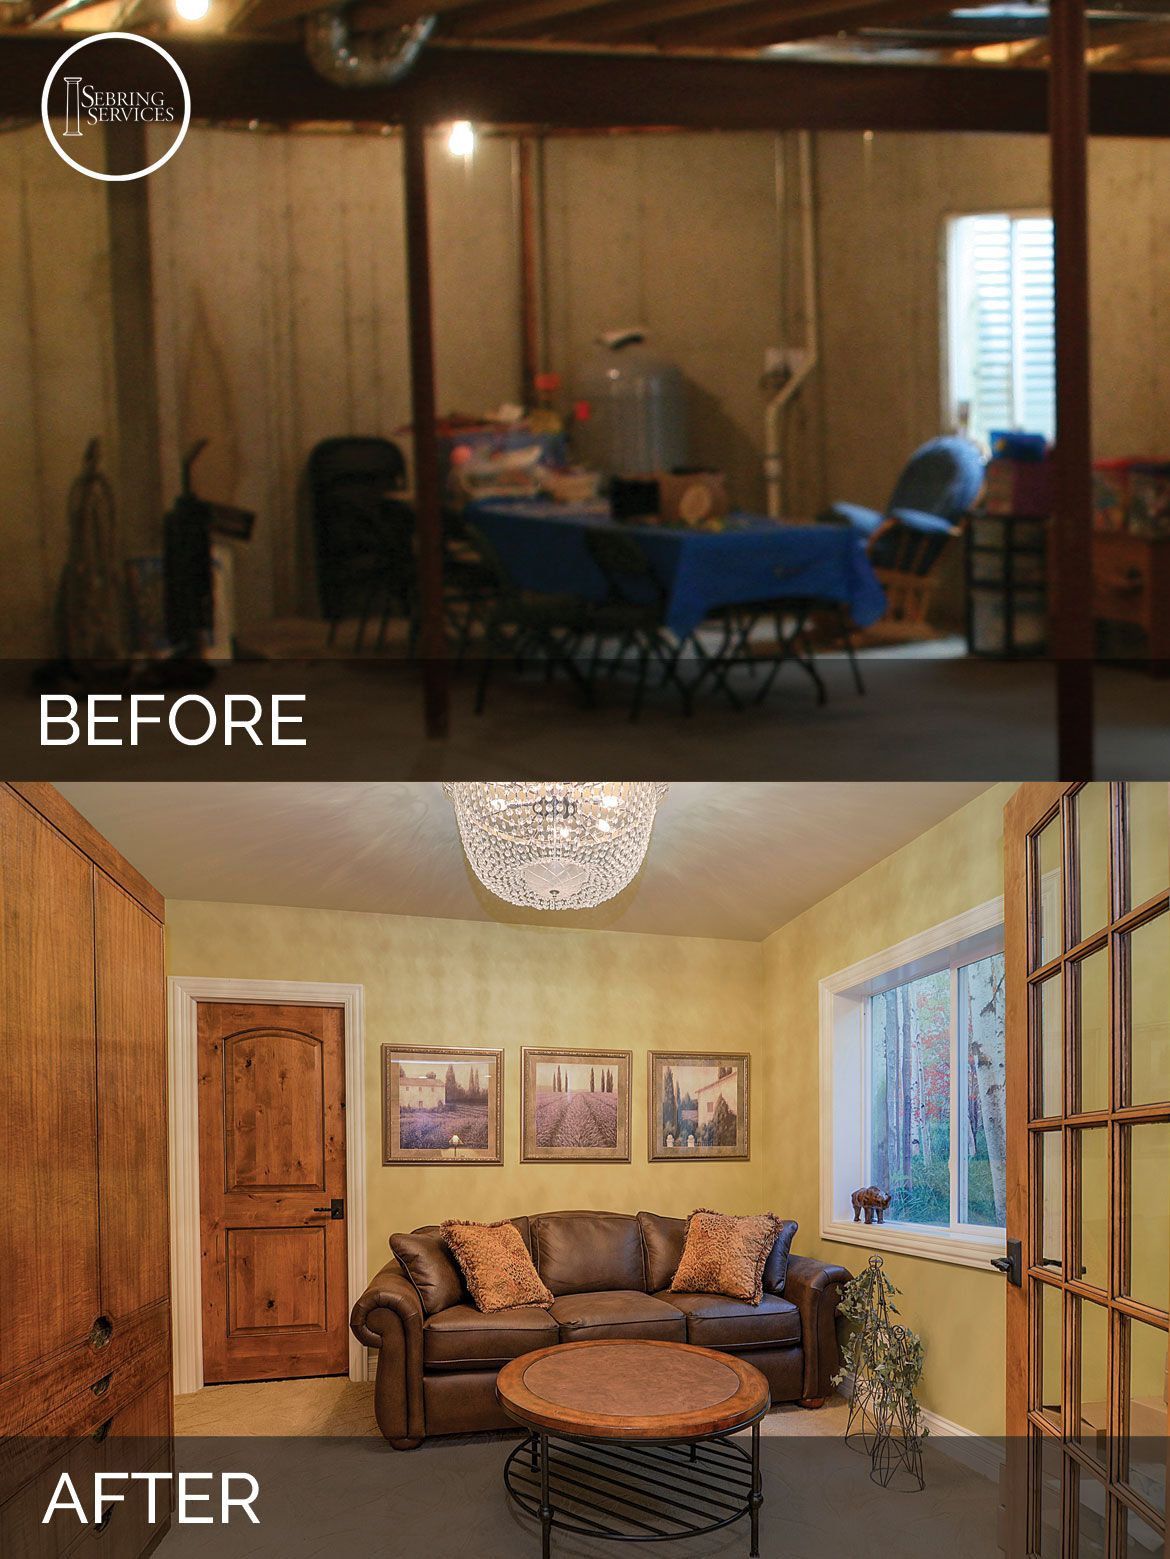 Brian & Danica's Basement Before & After Pictures